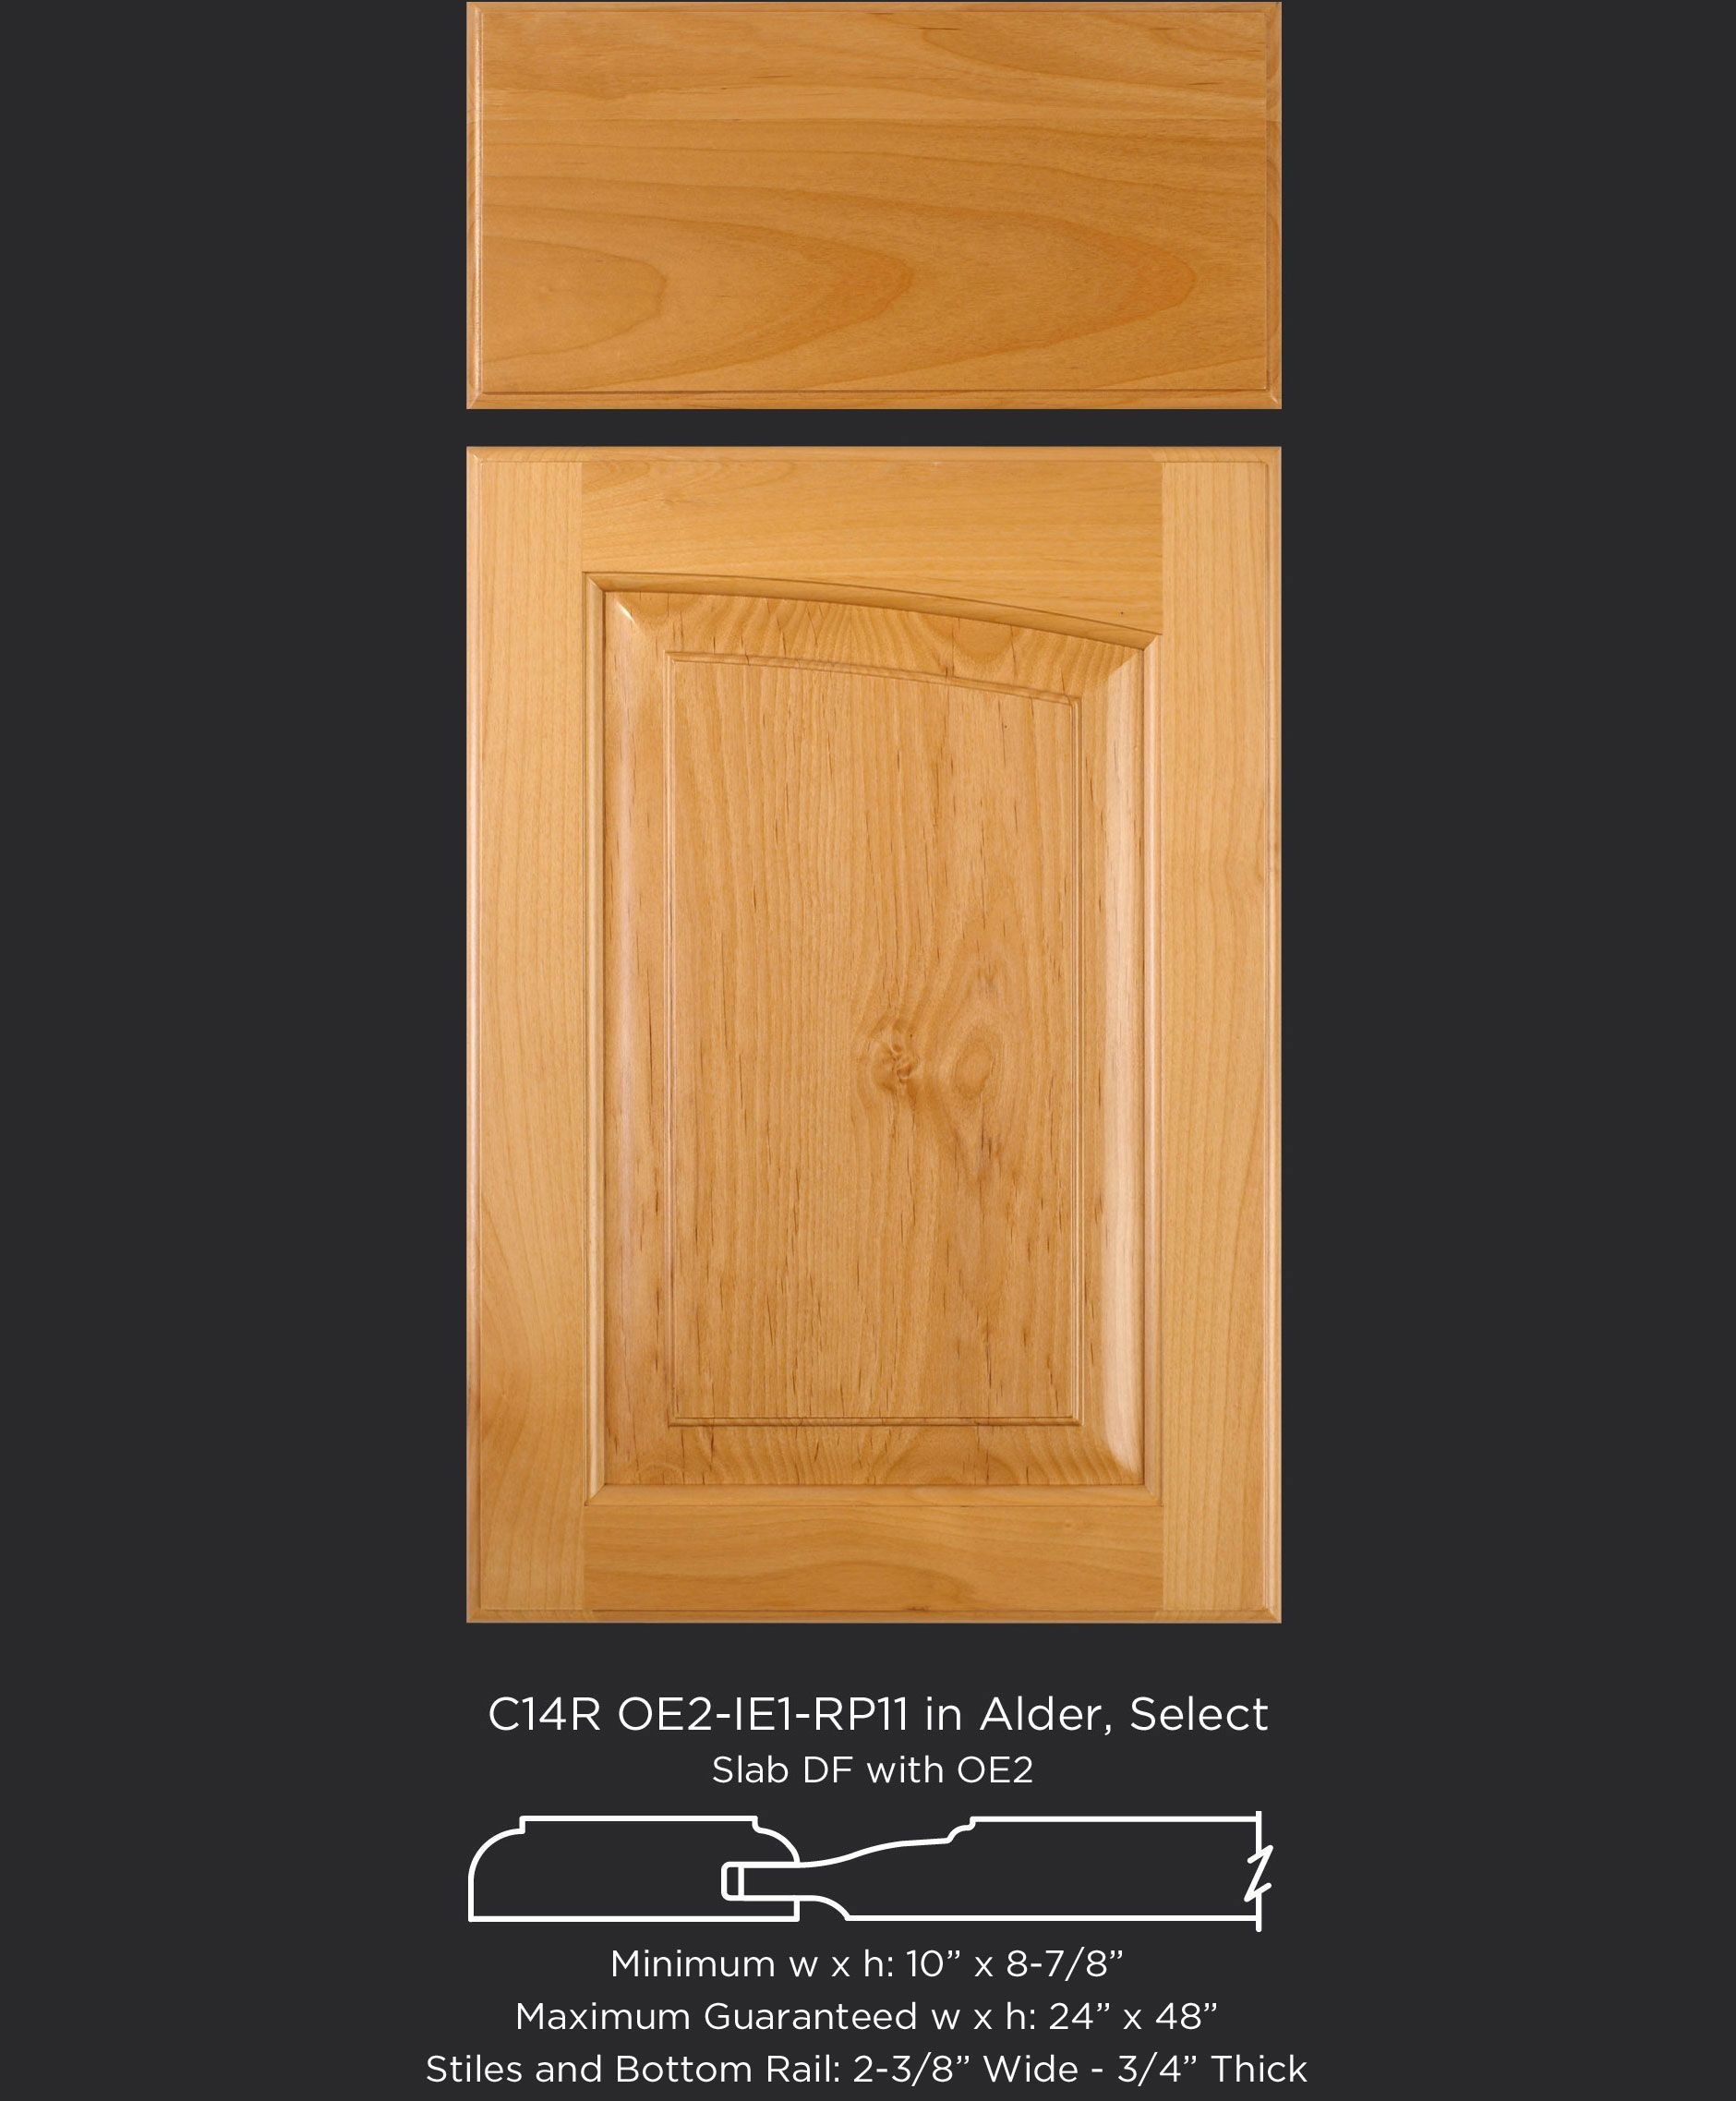 Eyebrow arch cabinet door with right arch in Alder by TaylorCraft